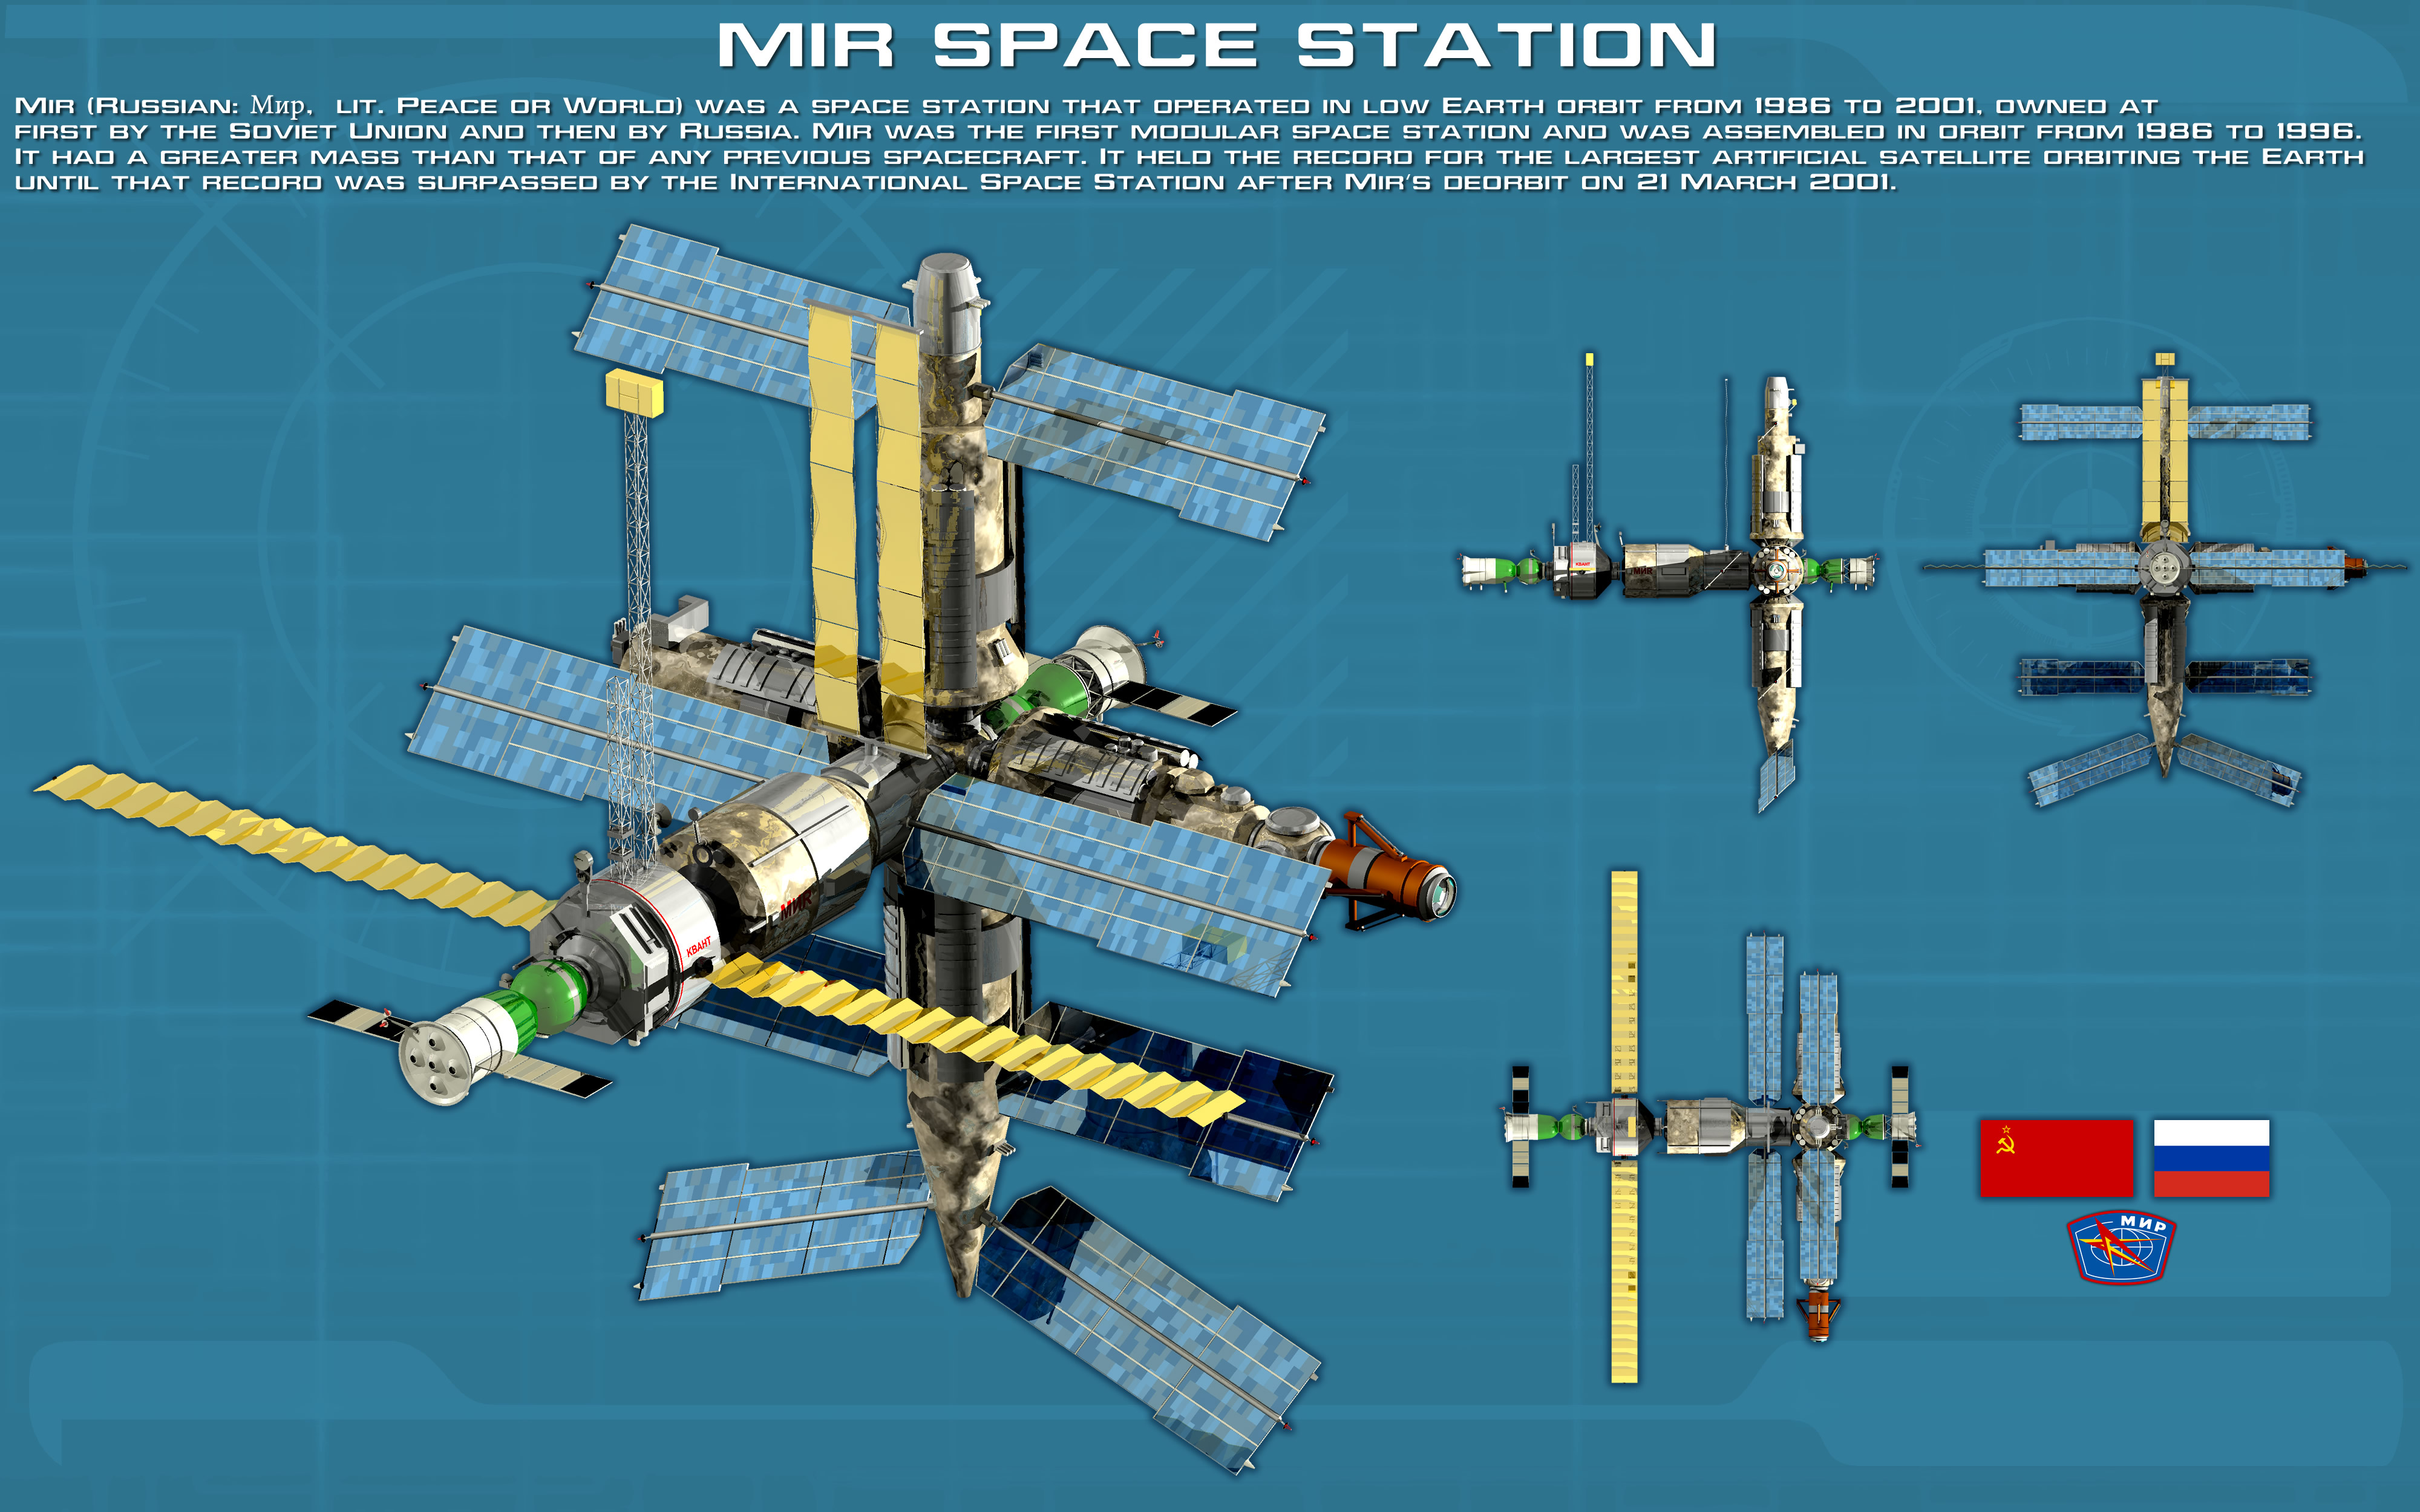 russia space station - photo #24